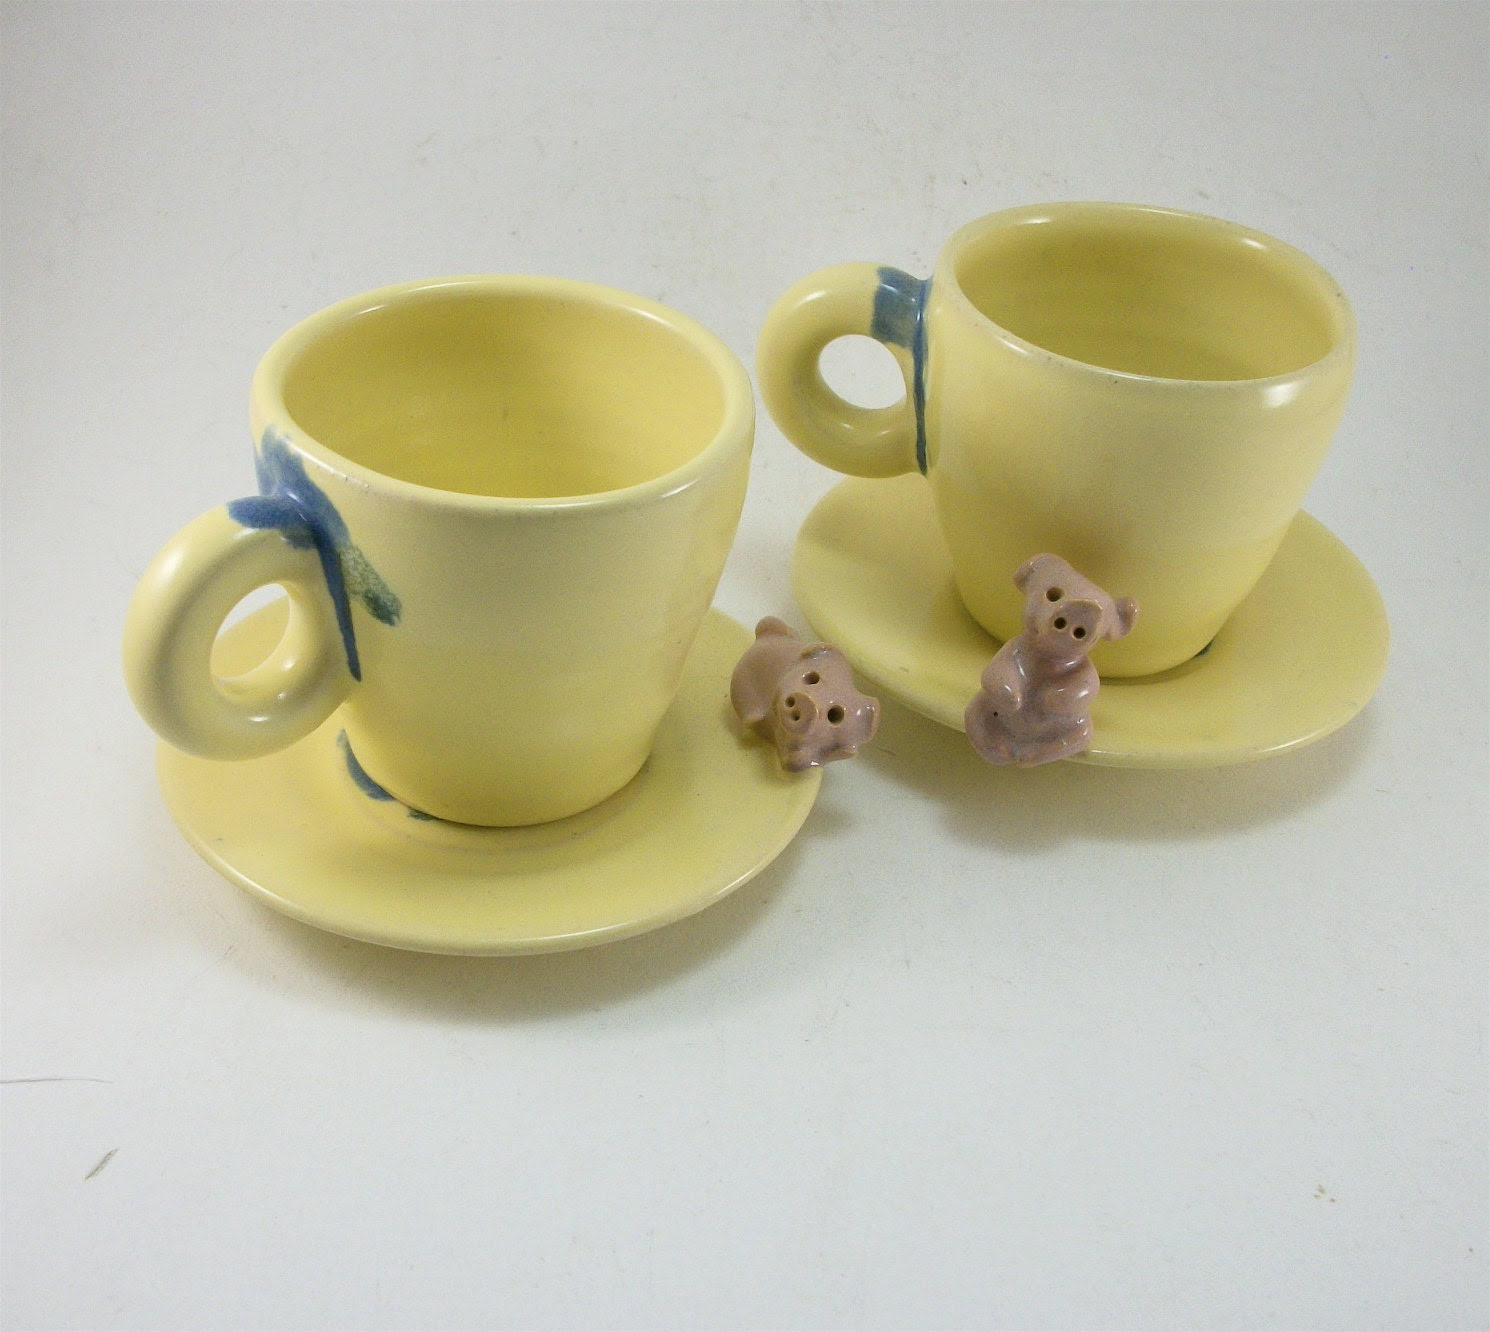 pair of pig cups and saucers with pigs for kids or espresso